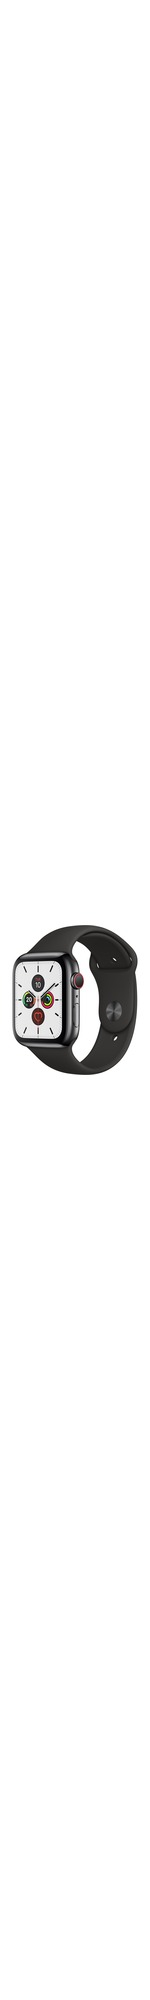 Apple Watch Series 5 Smart Watch - Wrist Wearable - Space Black Case - Black Band - Stainless Steel Case - Cellular Phone Capability - LTE, UMTS